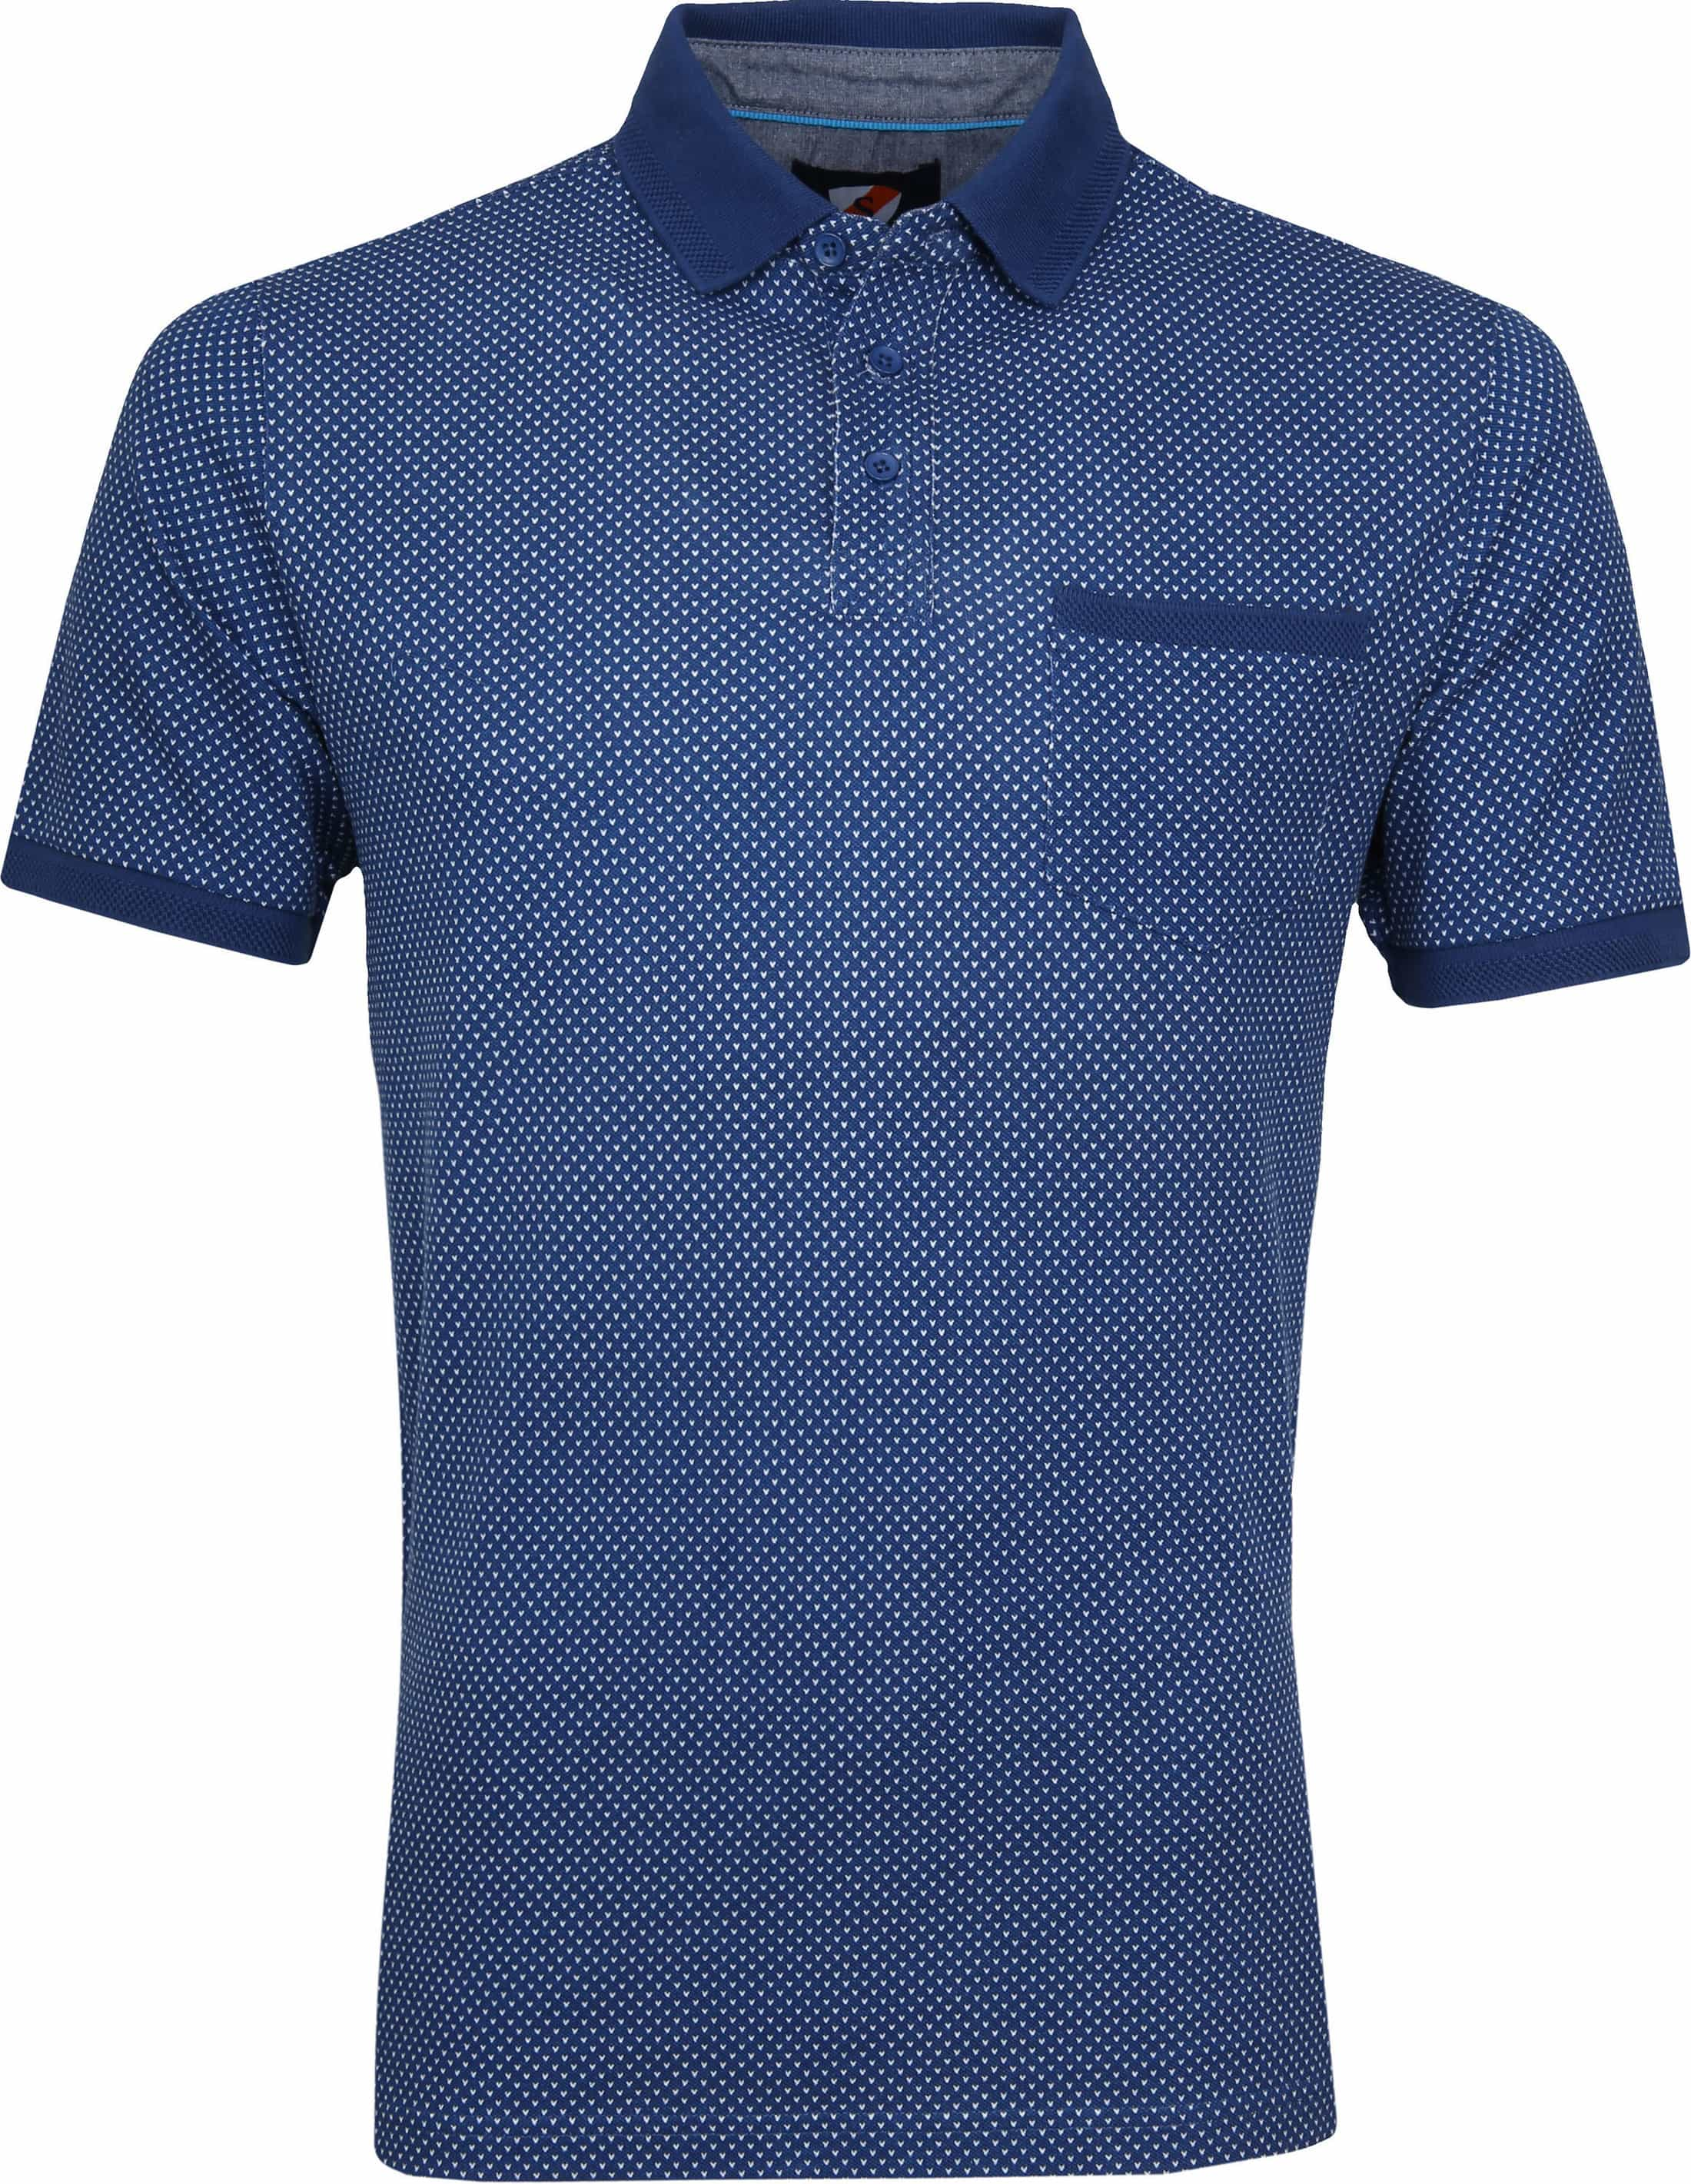 Suitable Till Poloshirt Dessin Blue foto 0